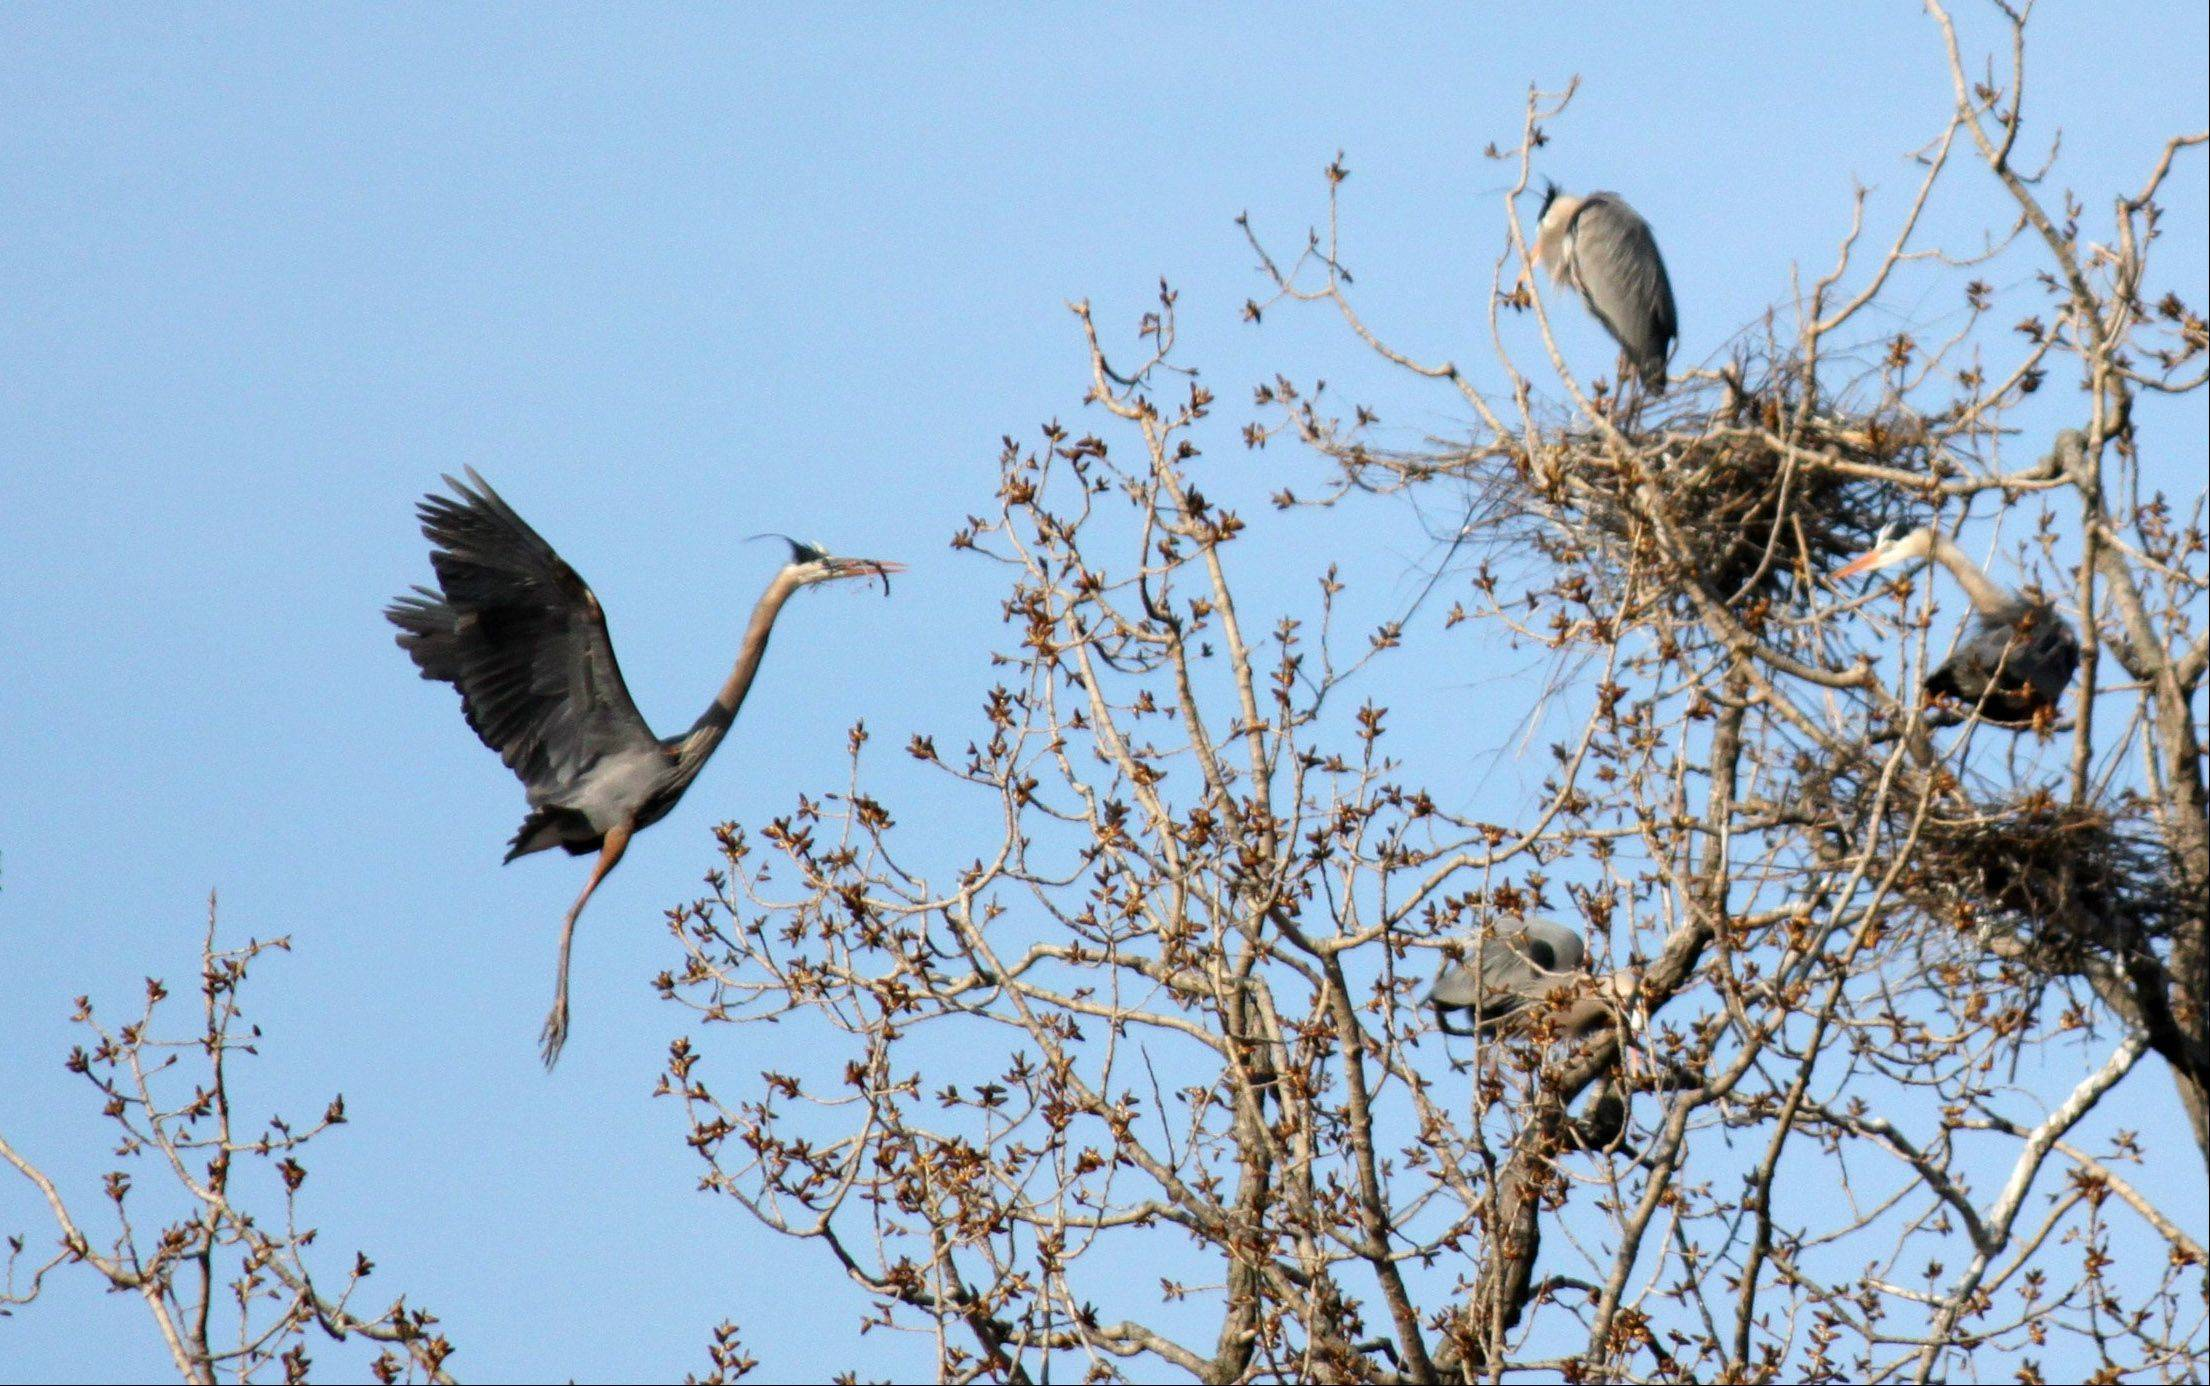 Each year the Great Blue Herons build their nests in the trees along the banks of east branch of the DuPage River. They establish quite a large rookery there with multiple nests. The photo I took shows a parent coming in with a fish in its mouth to feed the newborn herons.